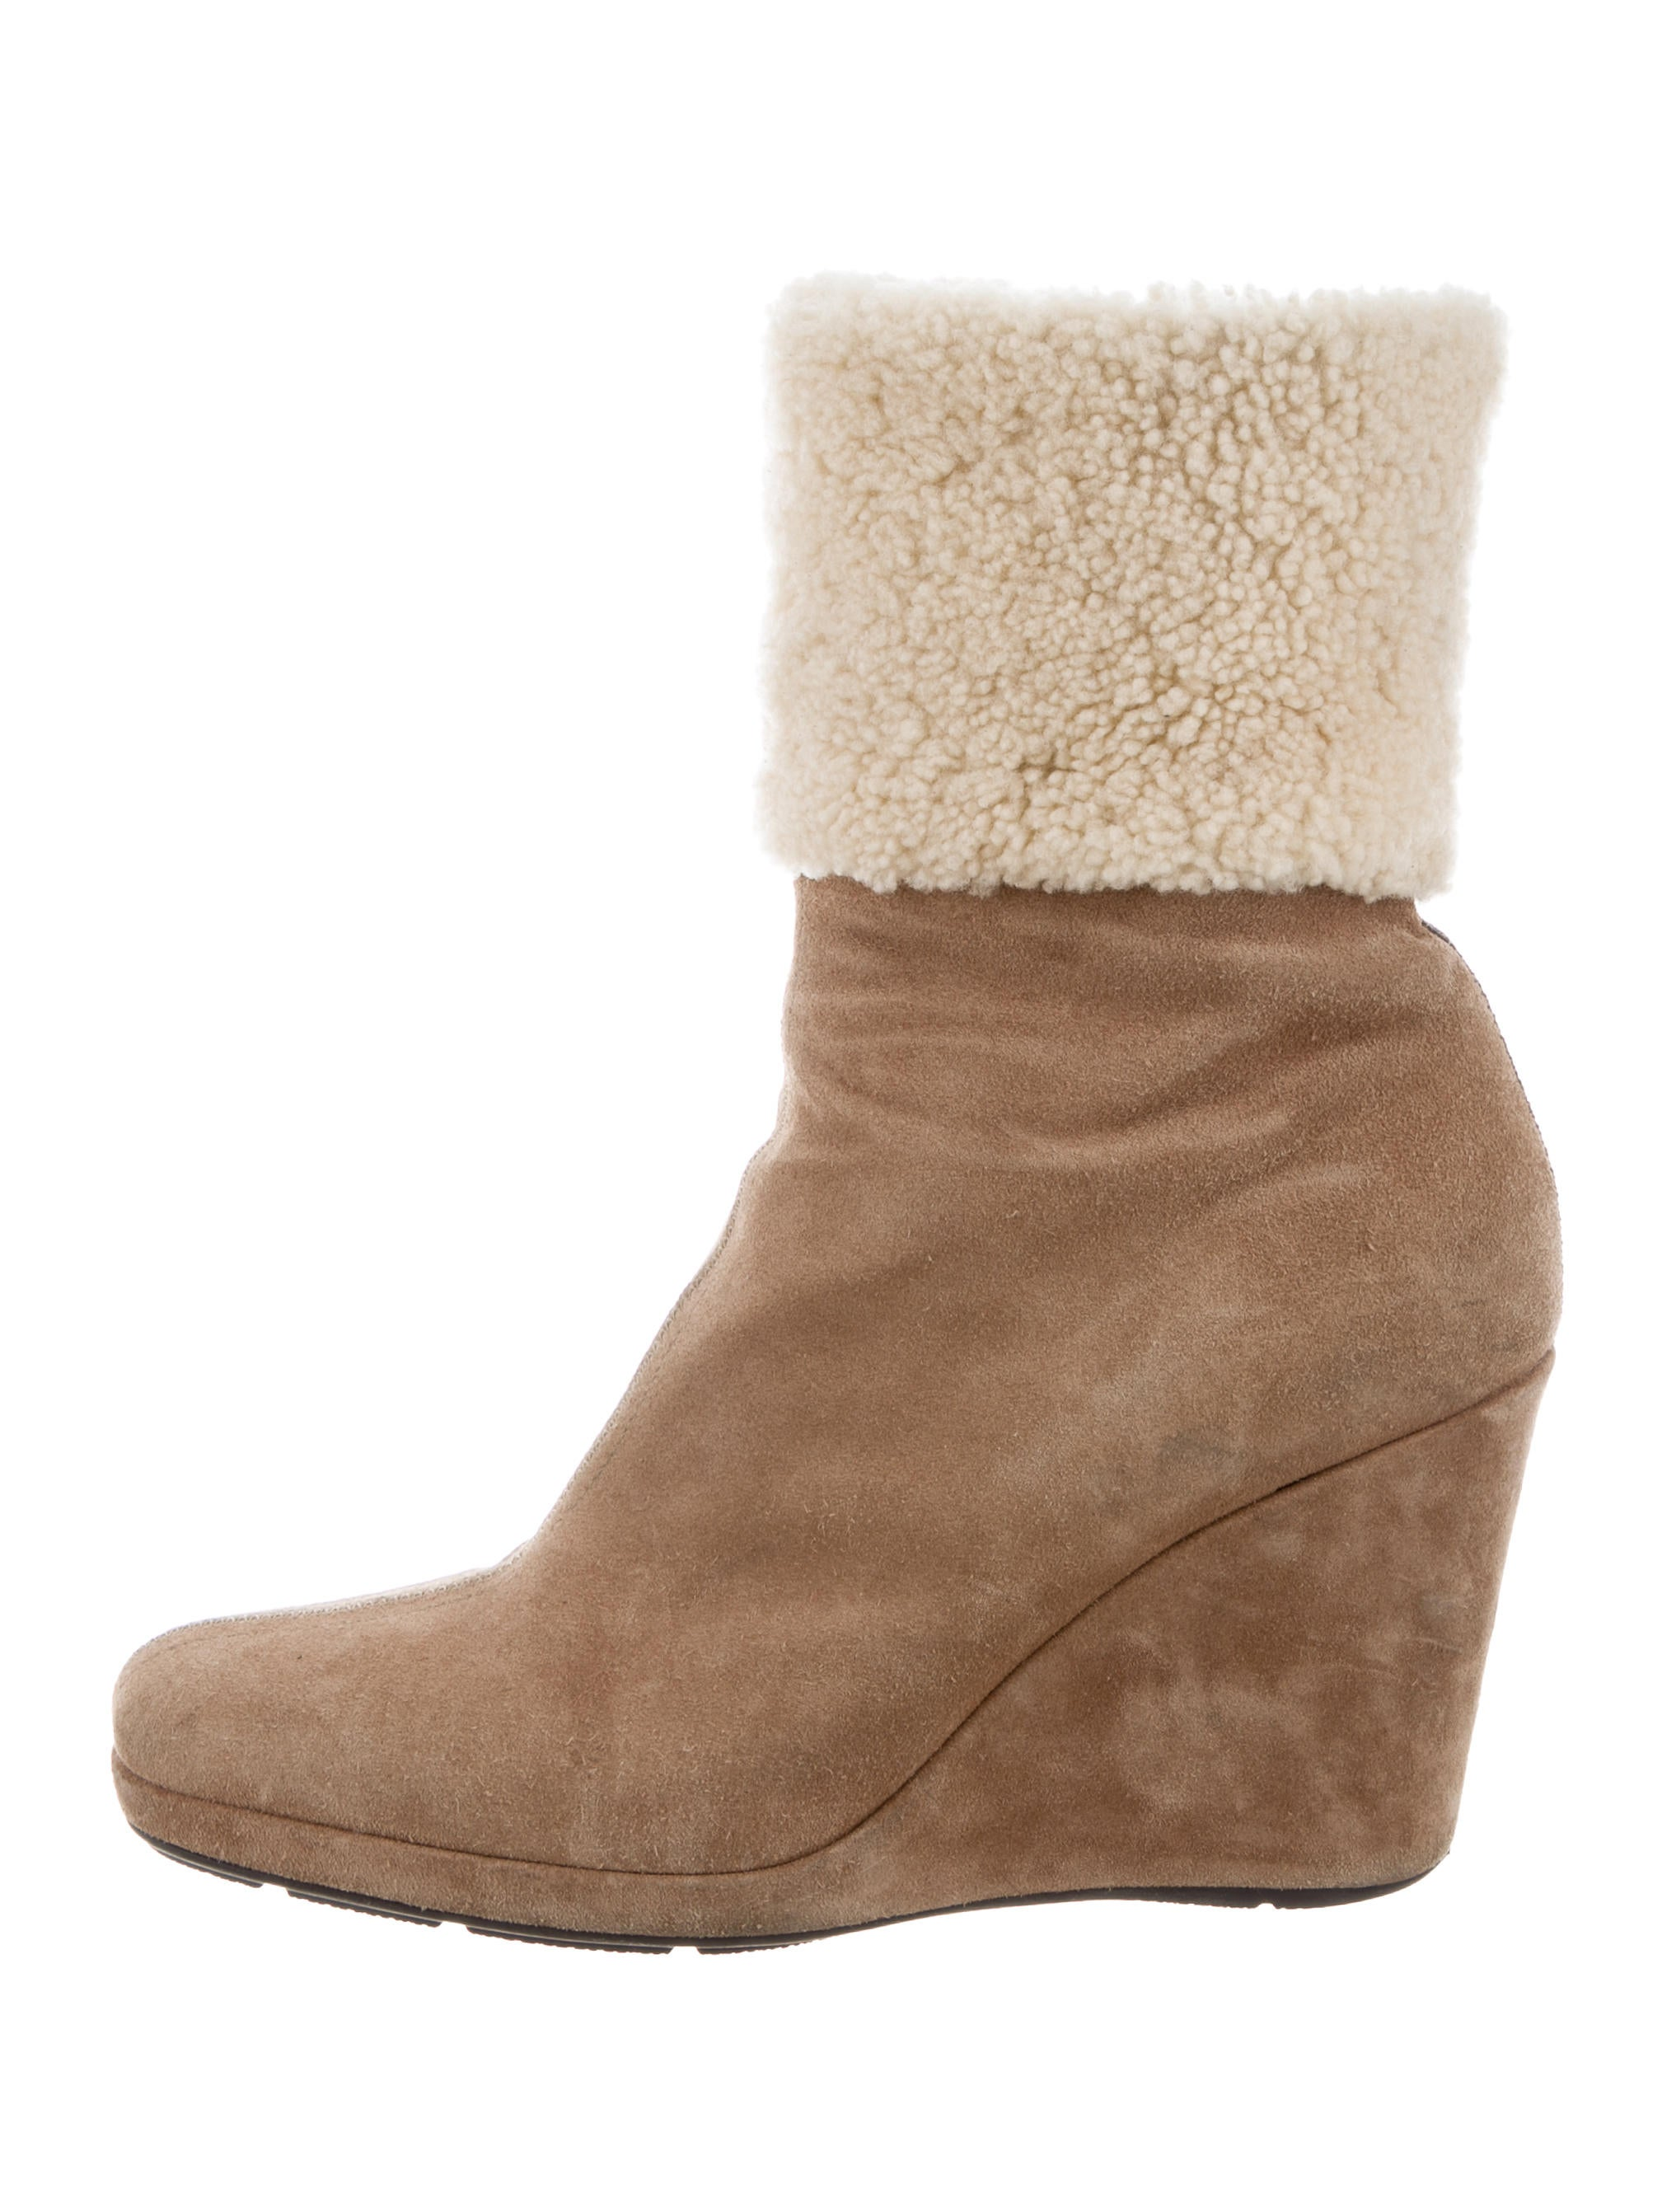 Prada Sport Shearling-Trimmed Wedge Ankle Boots cheap sale pay with visa sale sneakernews low shipping online oniMrhl